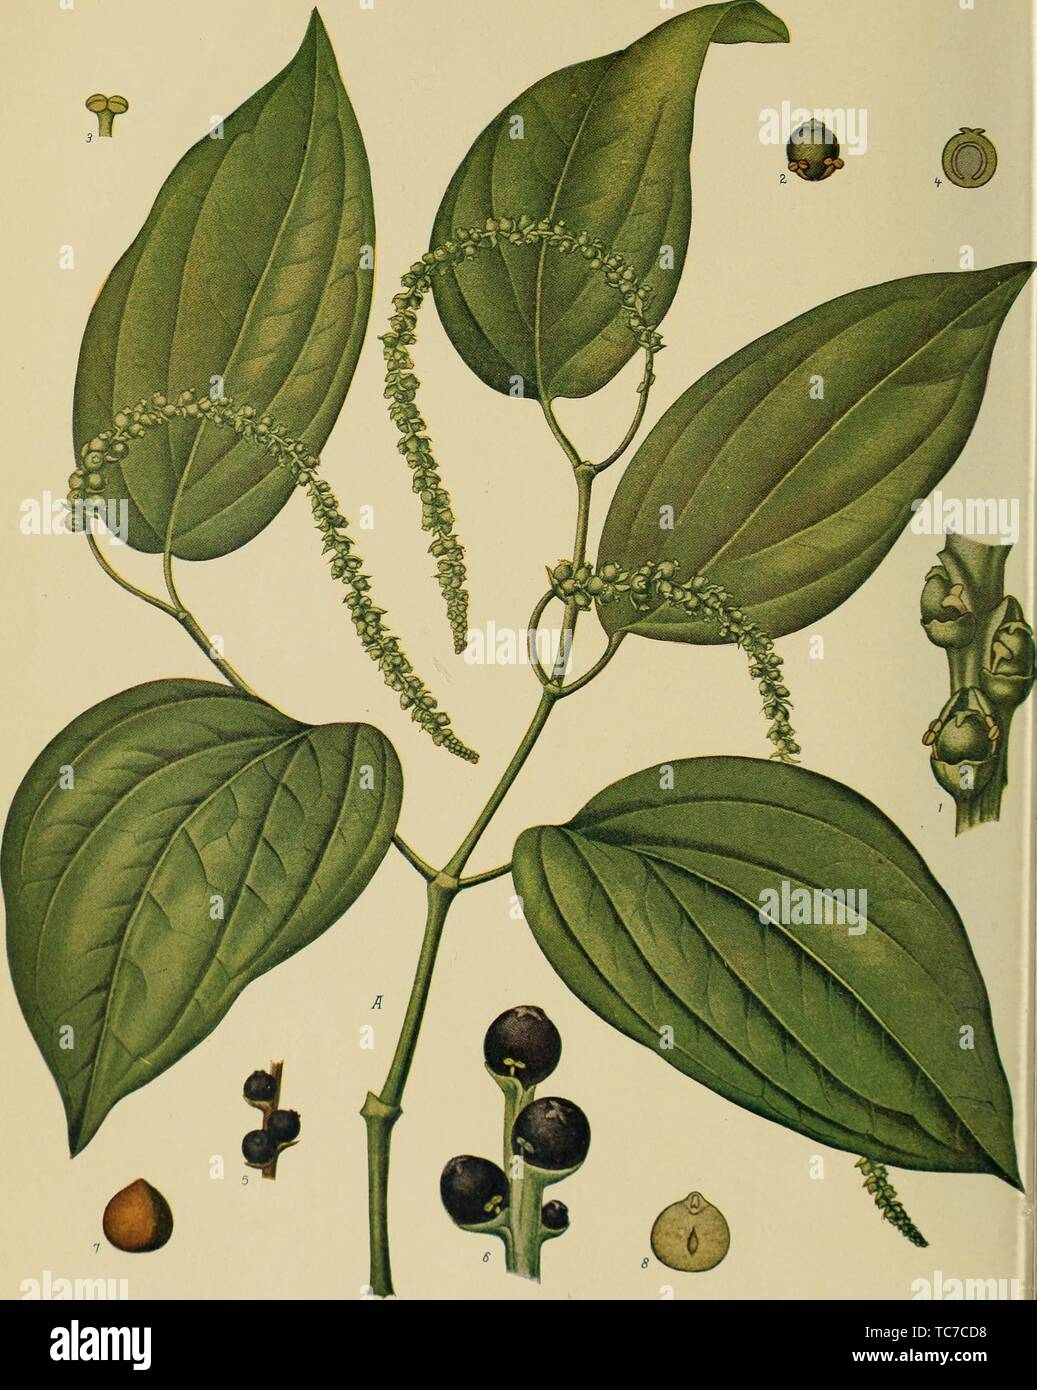 Engraved drawing of the Black Pepper (Piper nigrum), from the book 'Birds and nature' by A. W, 1900. Mumford. Courtesy Internet Archive. () - Stock Image